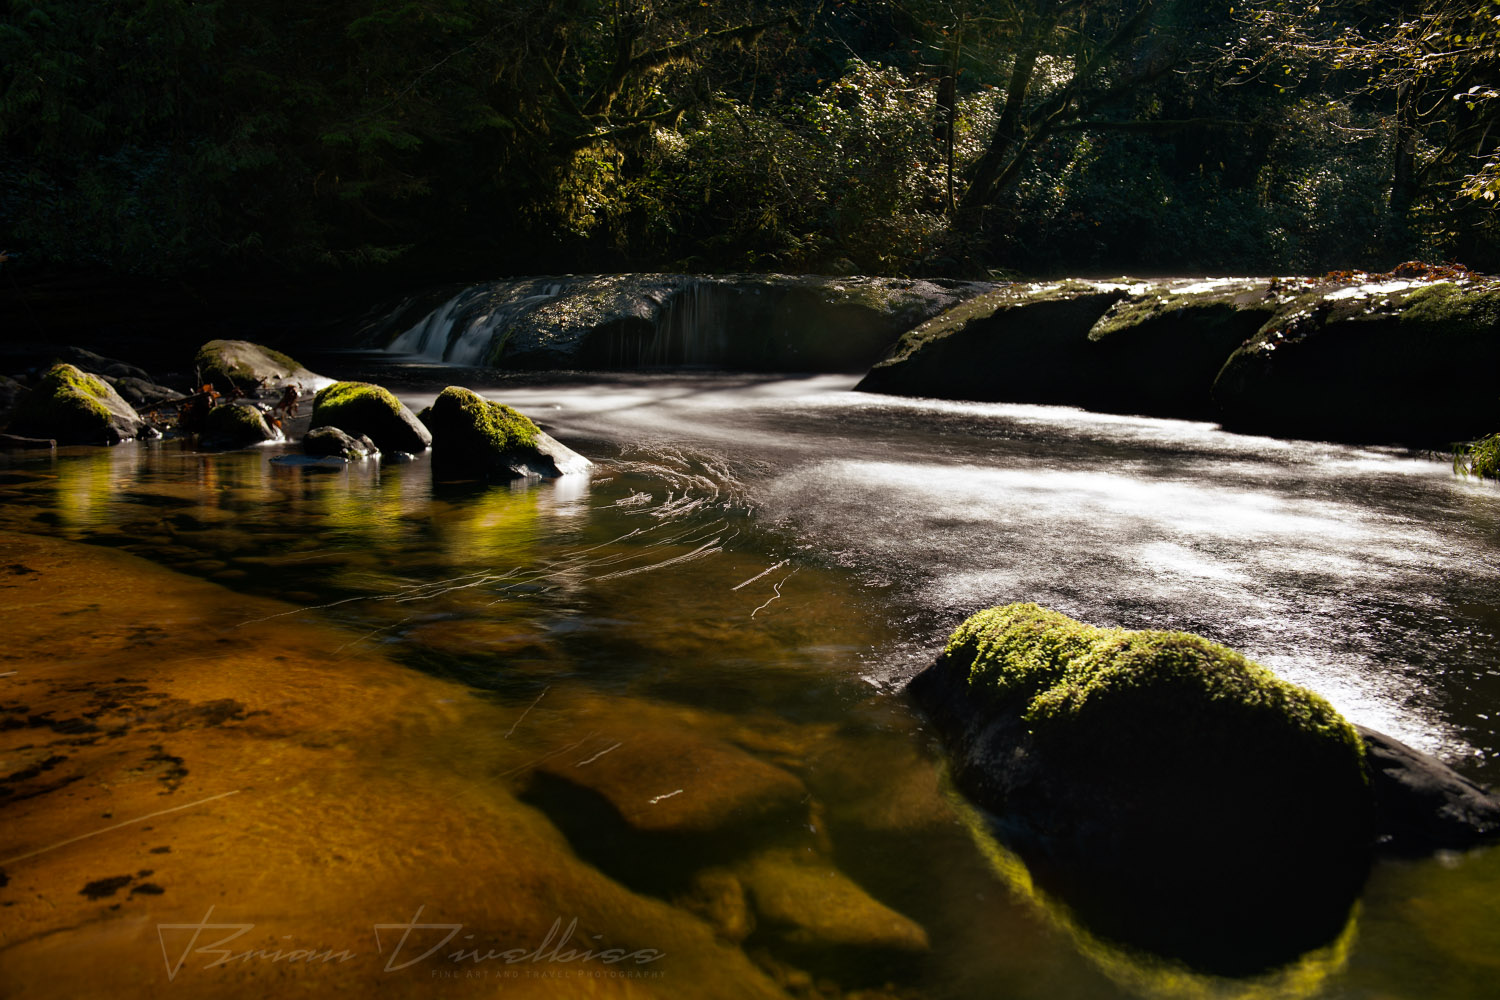 Water rounds a bend of rocks in a sun-dappled stream in Oregon.